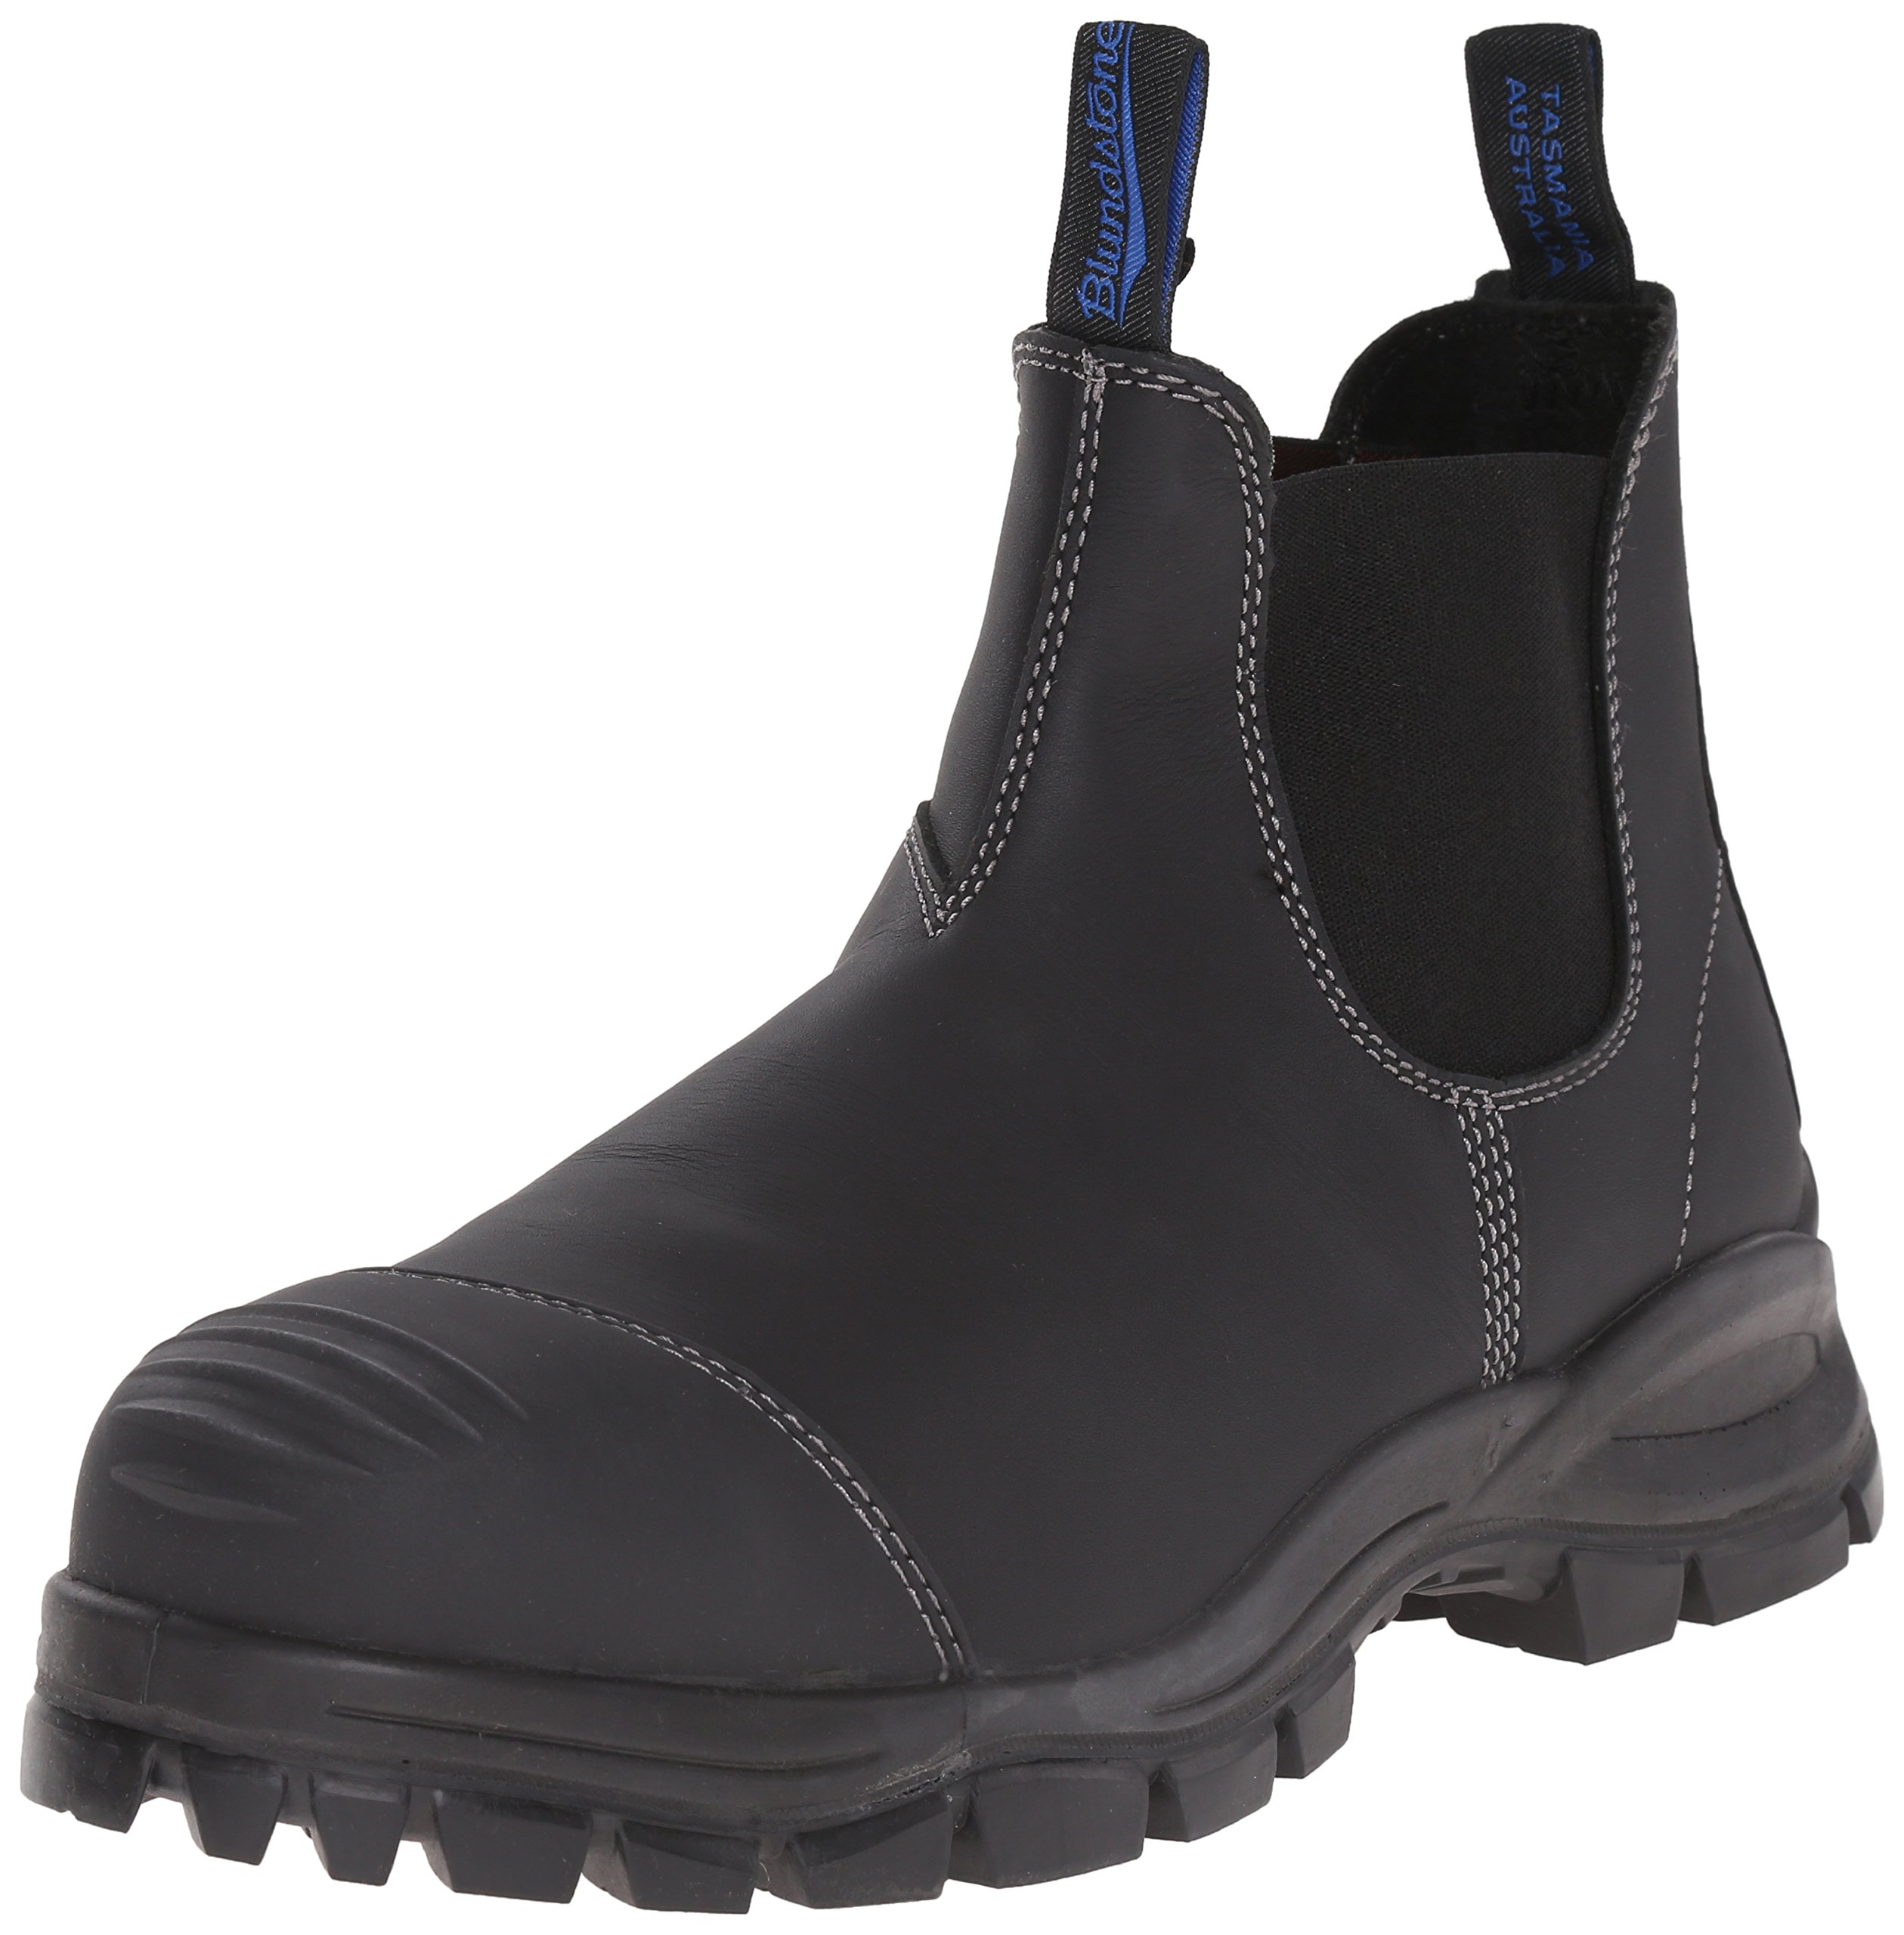 Blundstone Work Series 990 ,Black,10.5 UK/11.5 M US by Ralph Libonati Co/Blundstone M (Image #1)